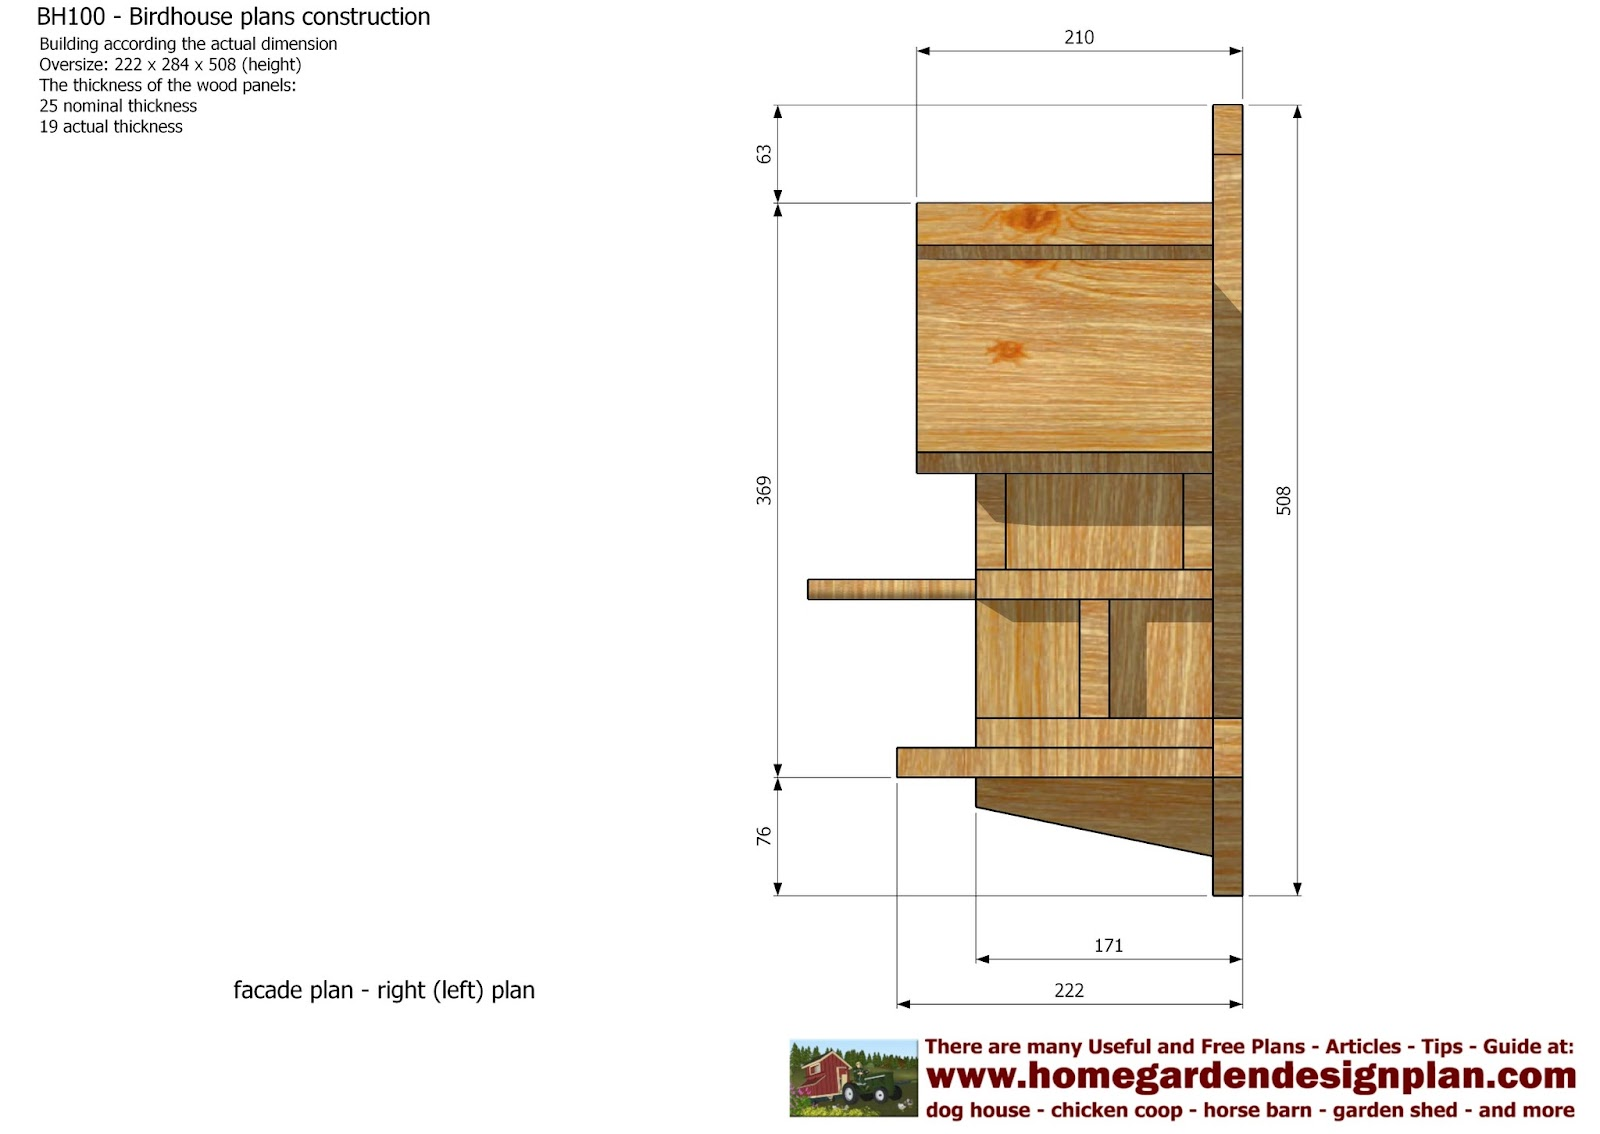 Home garden plans bh100 bird house plans construction for House plans to build